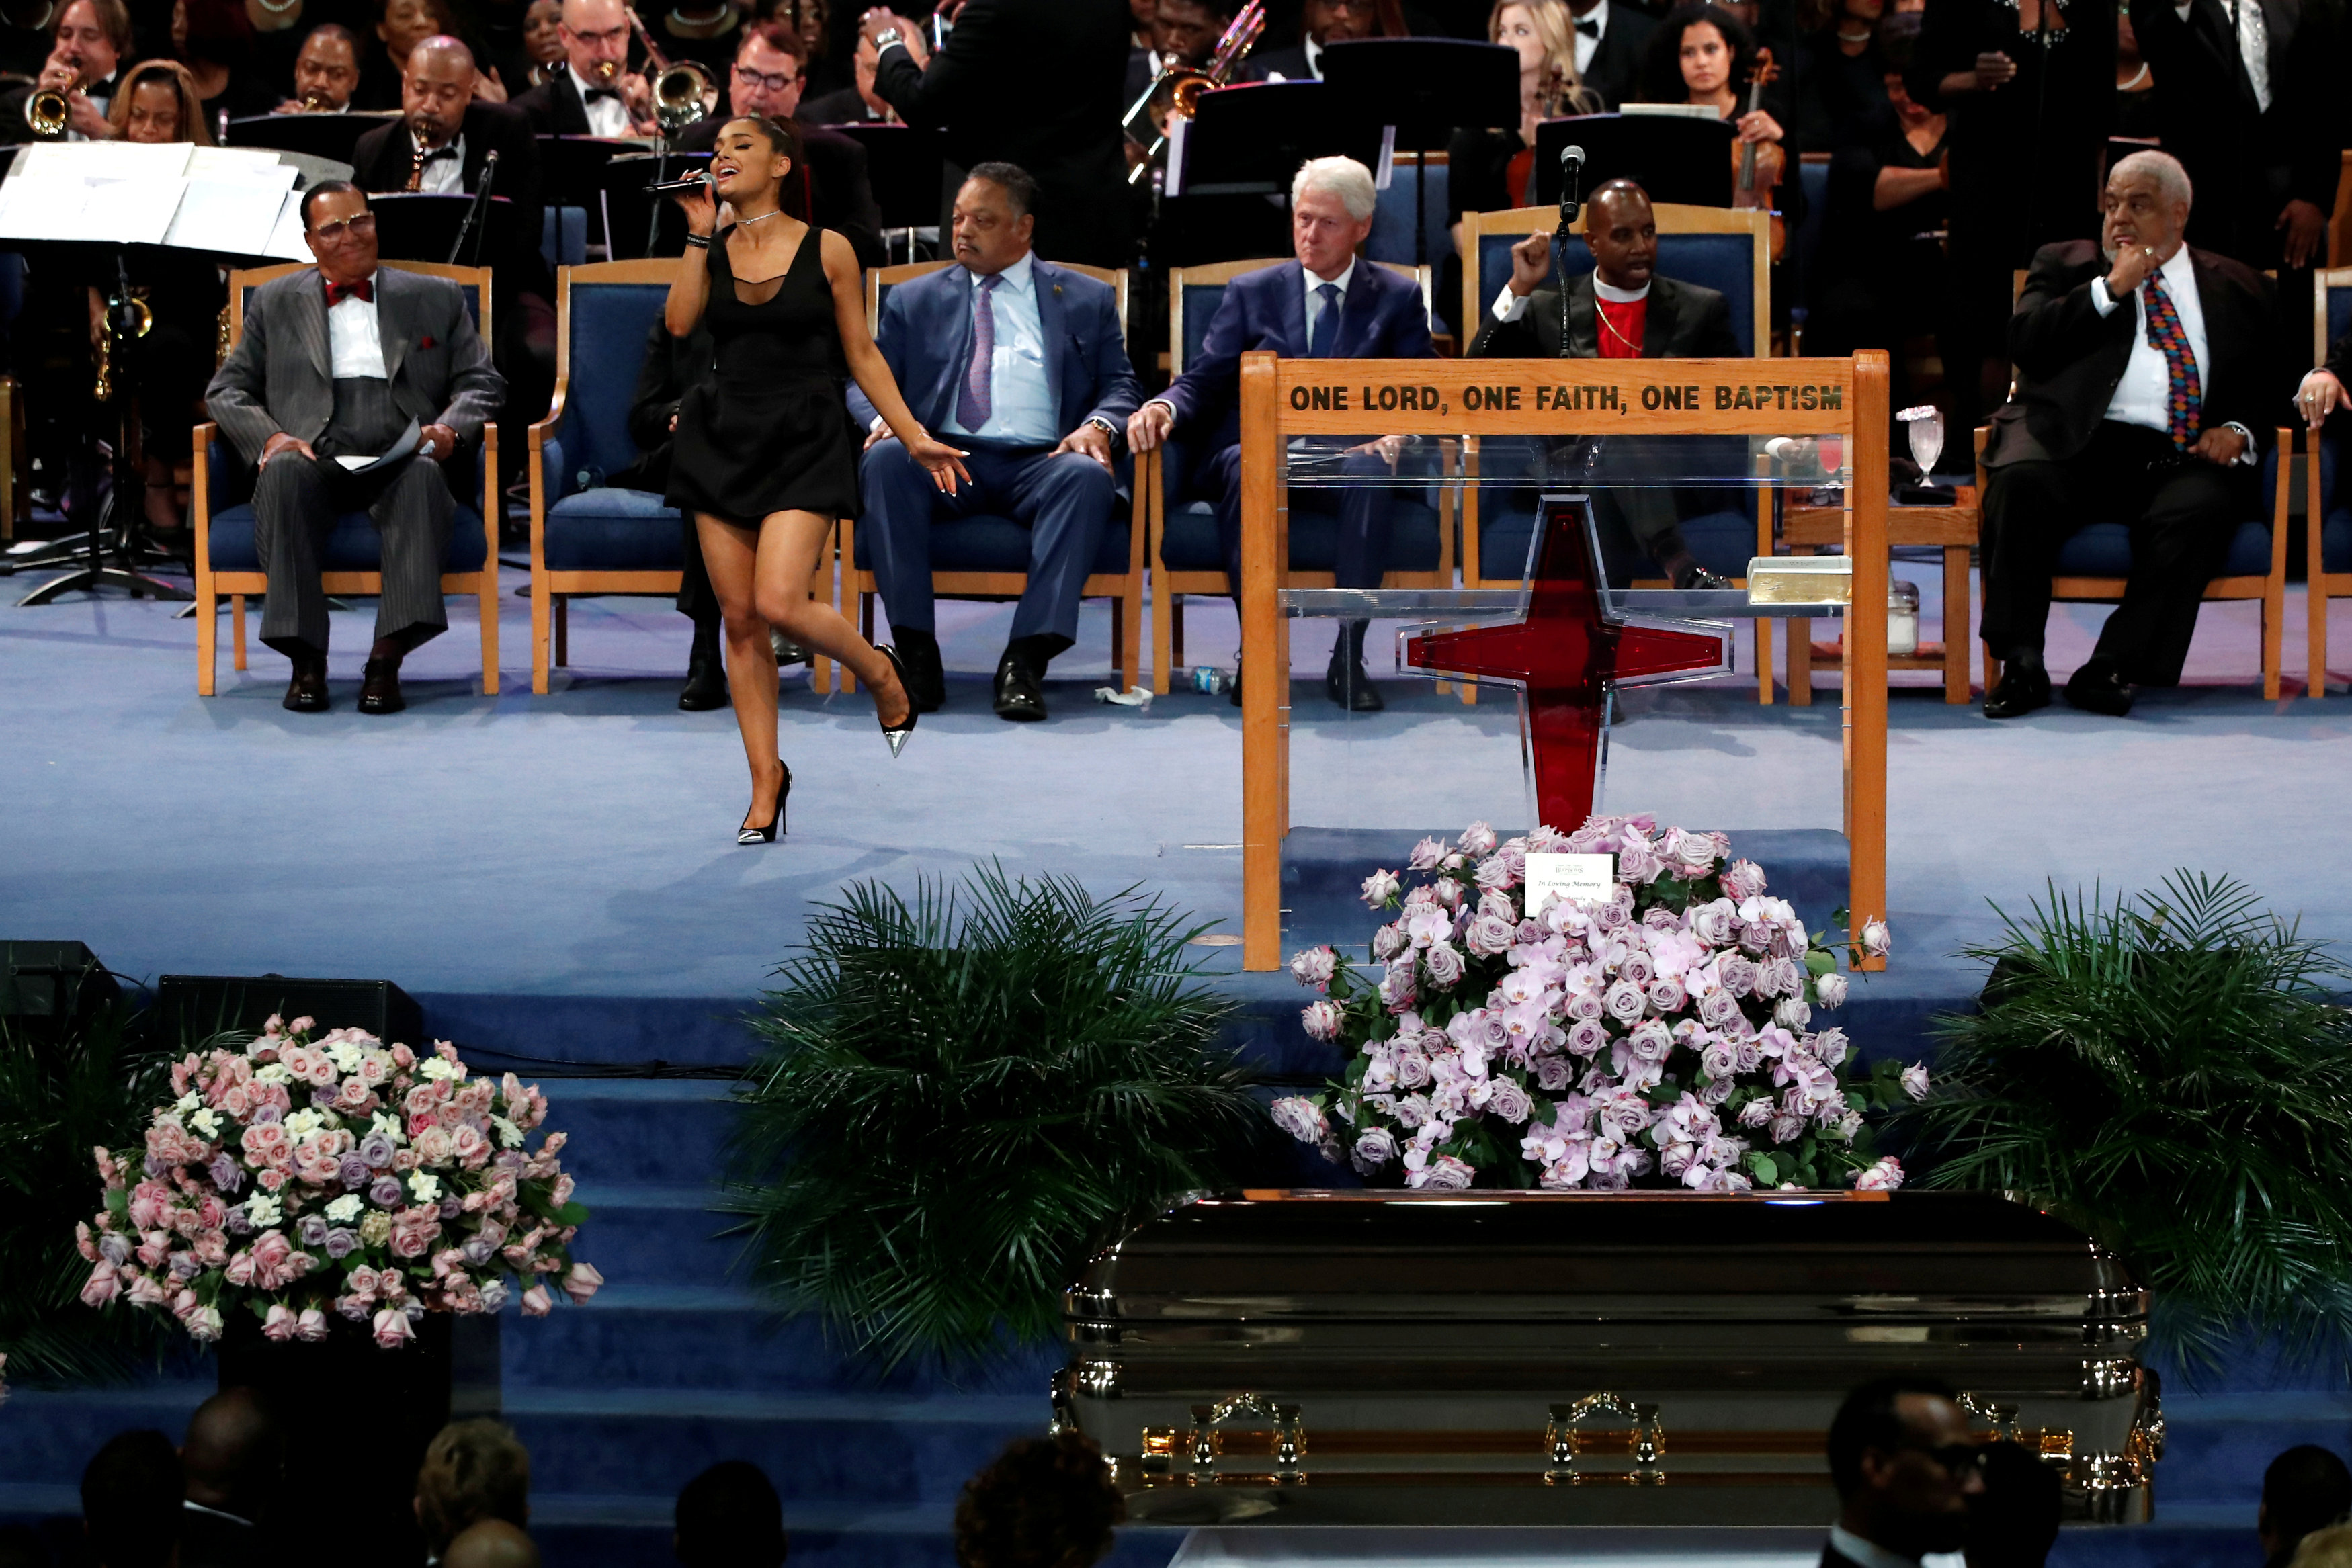 """Aretha Franklin's eulogy was """"offensive and distasteful,"""" family says"""